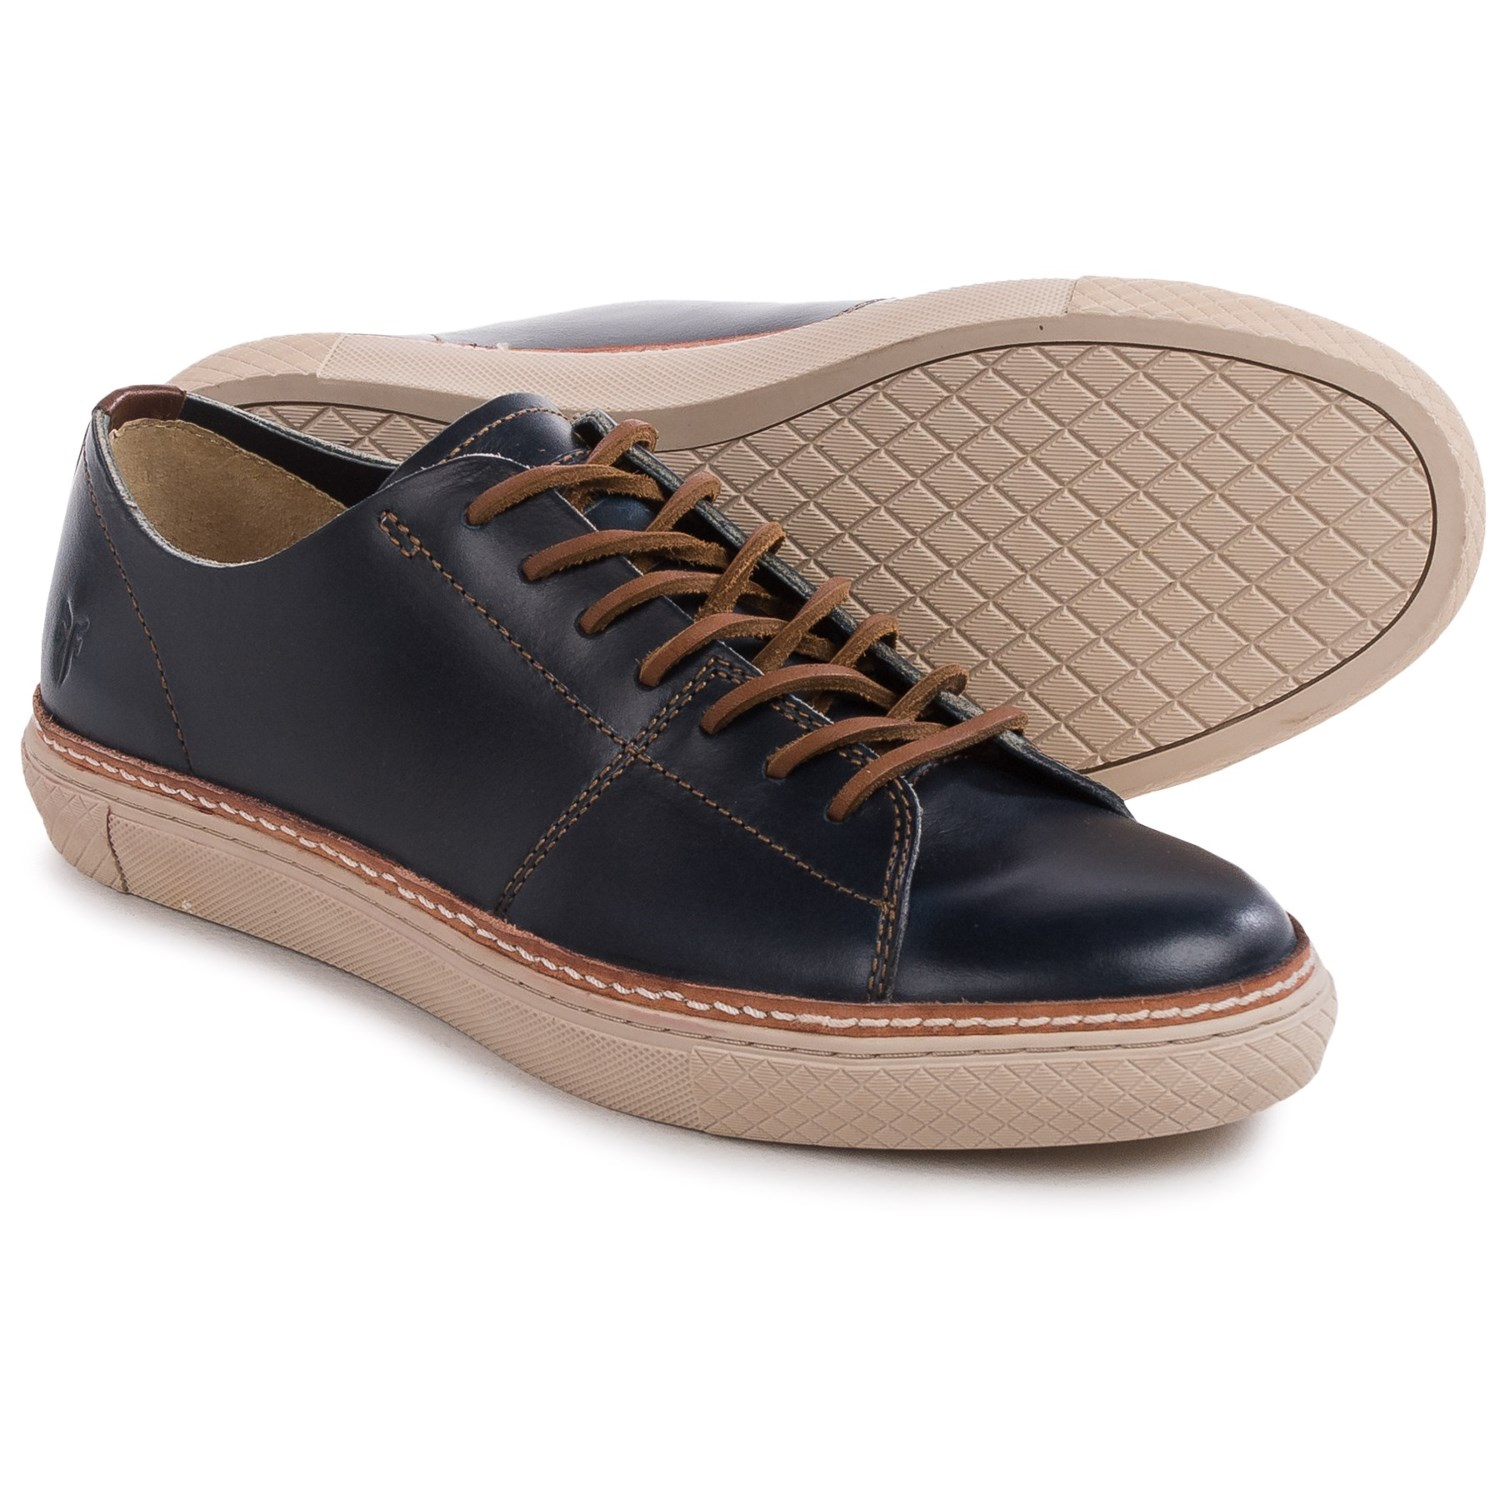 Frye Gates Low Lace Sneakers Leather For Men